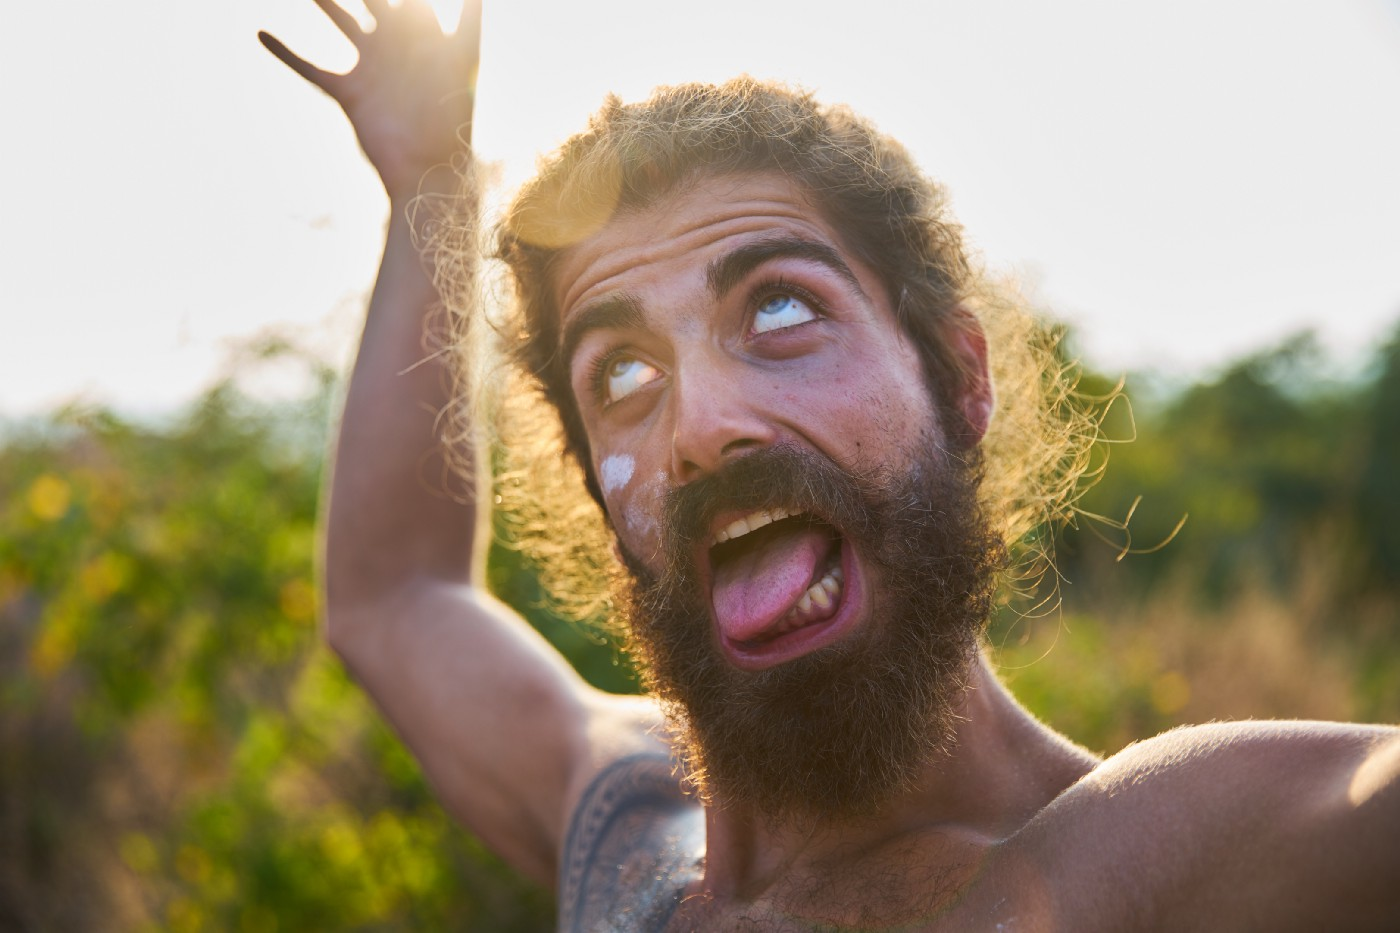 Bearded man making a funny face